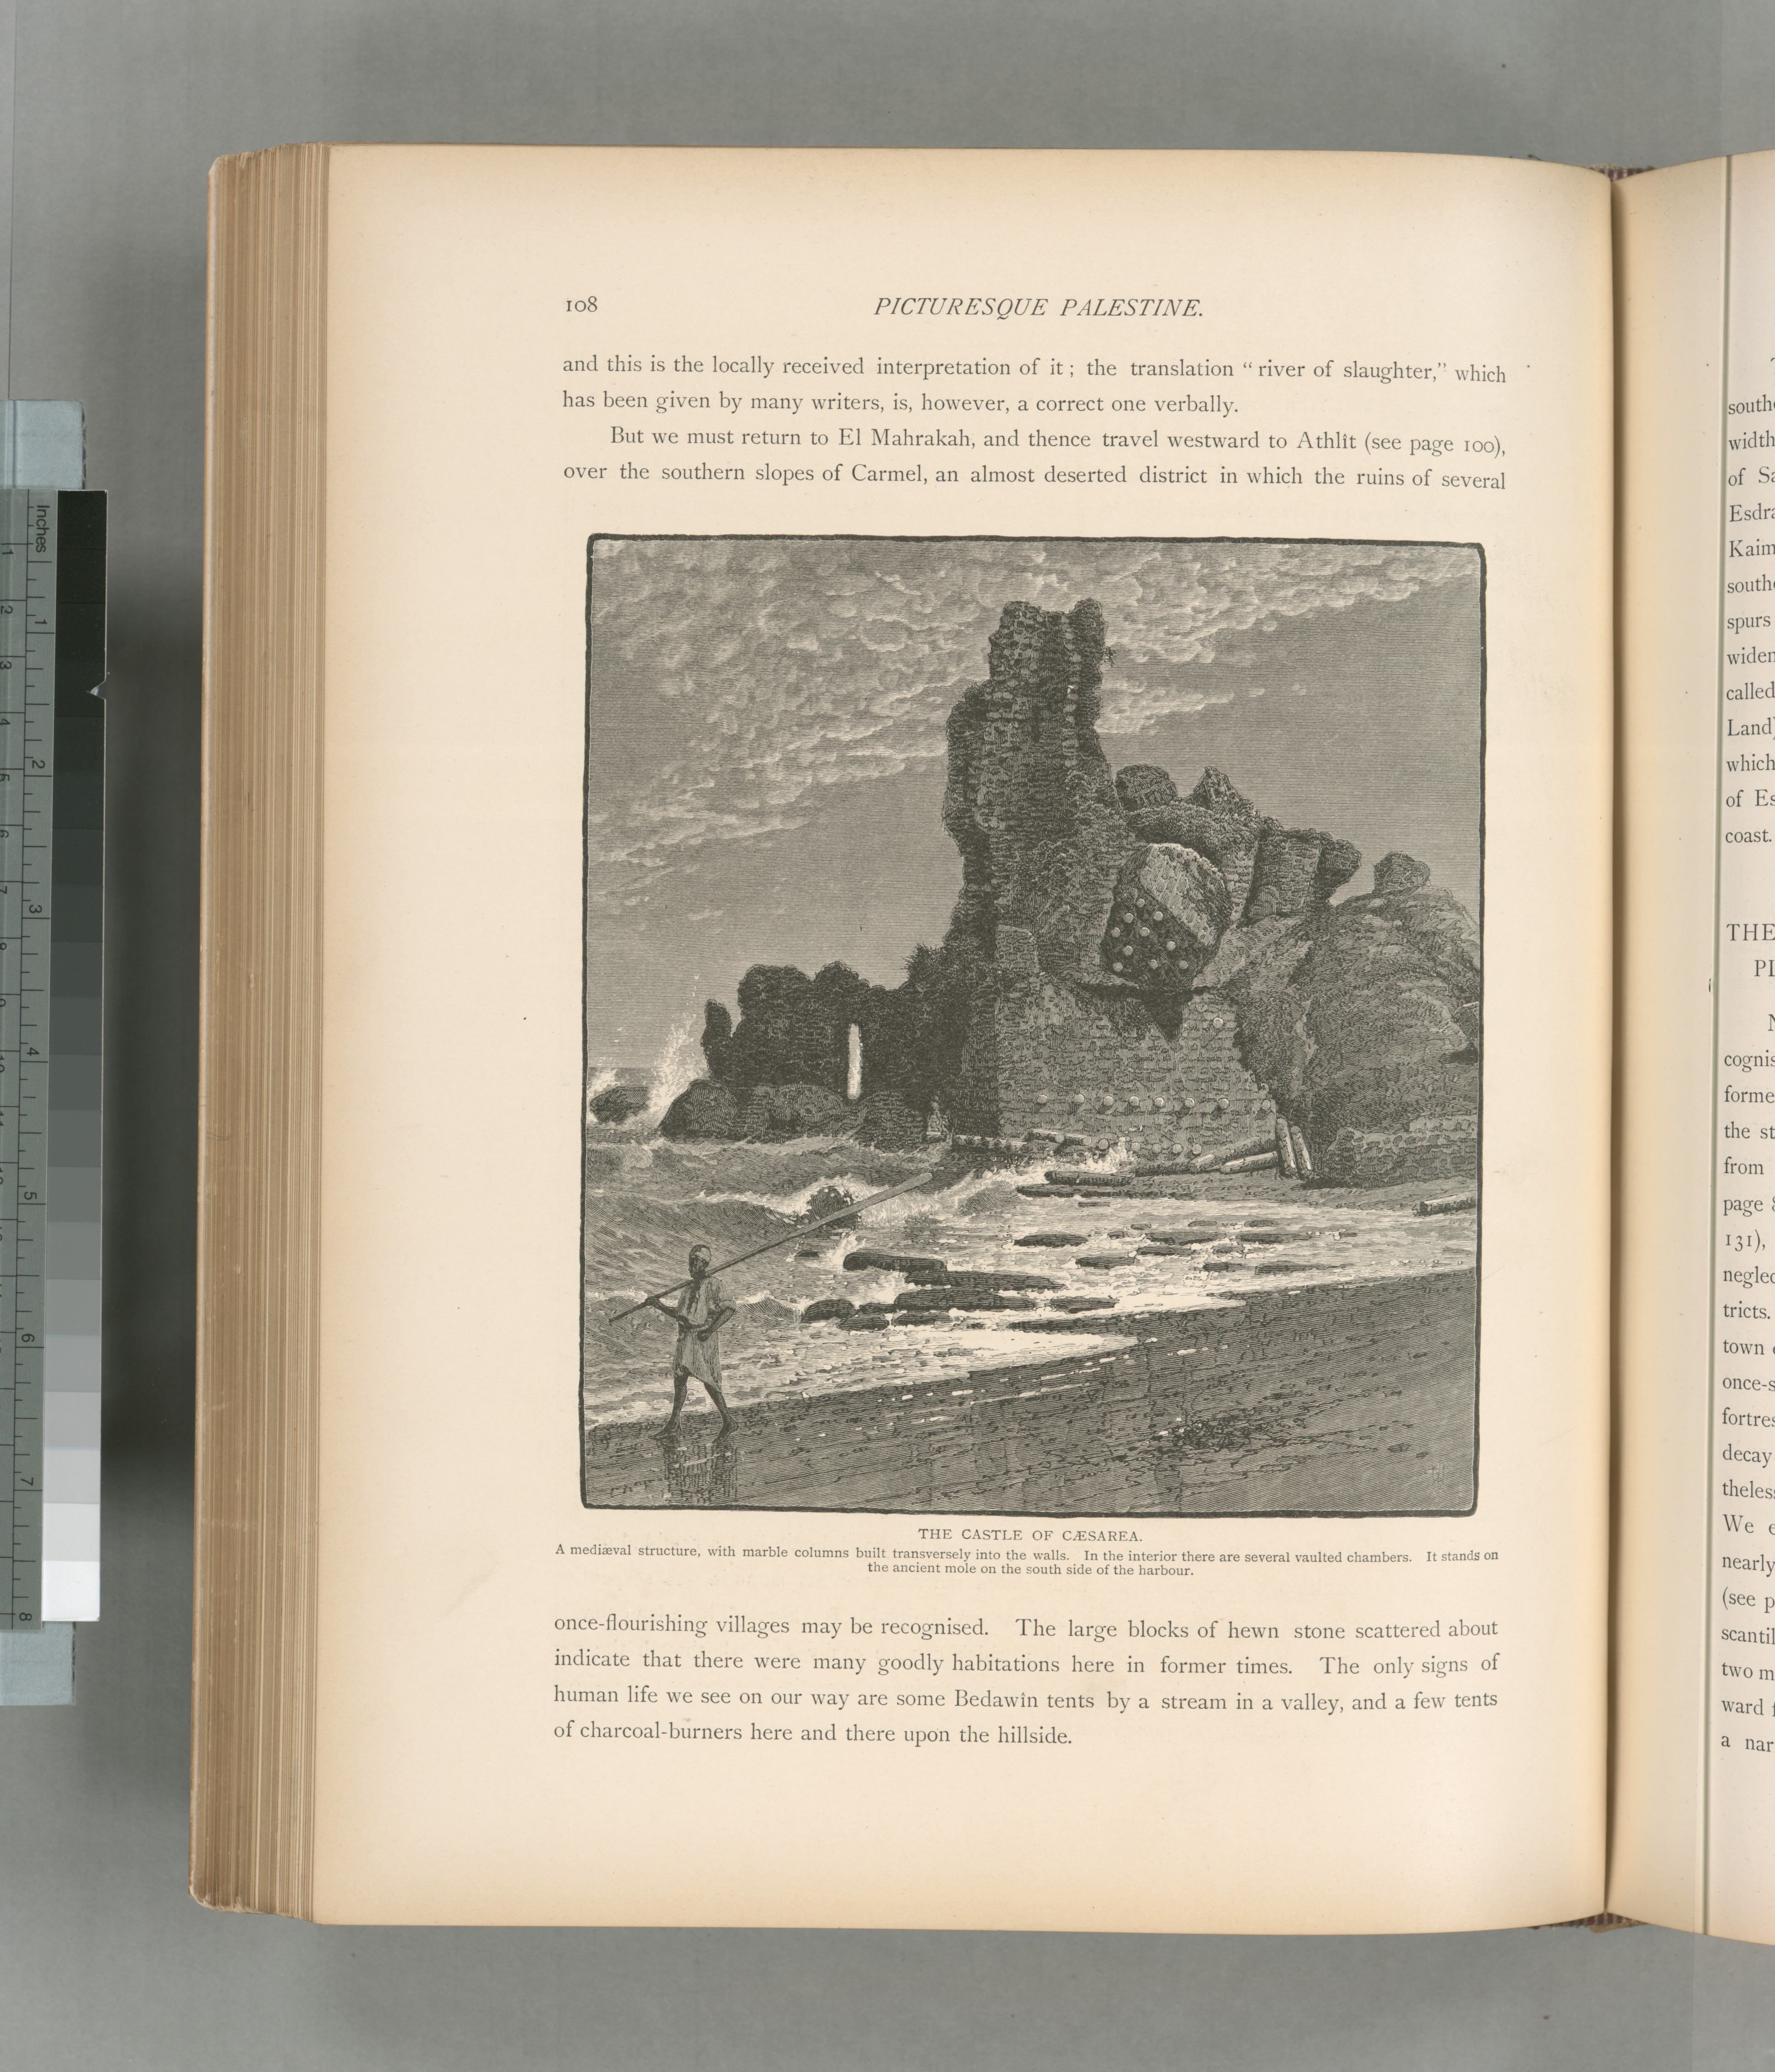 the_castle_of_caesarea_a_medieval_structure_with_marble_columns_built_transversely_into_the_walls_in_the_interior_there_are_several_vaulted_chambers